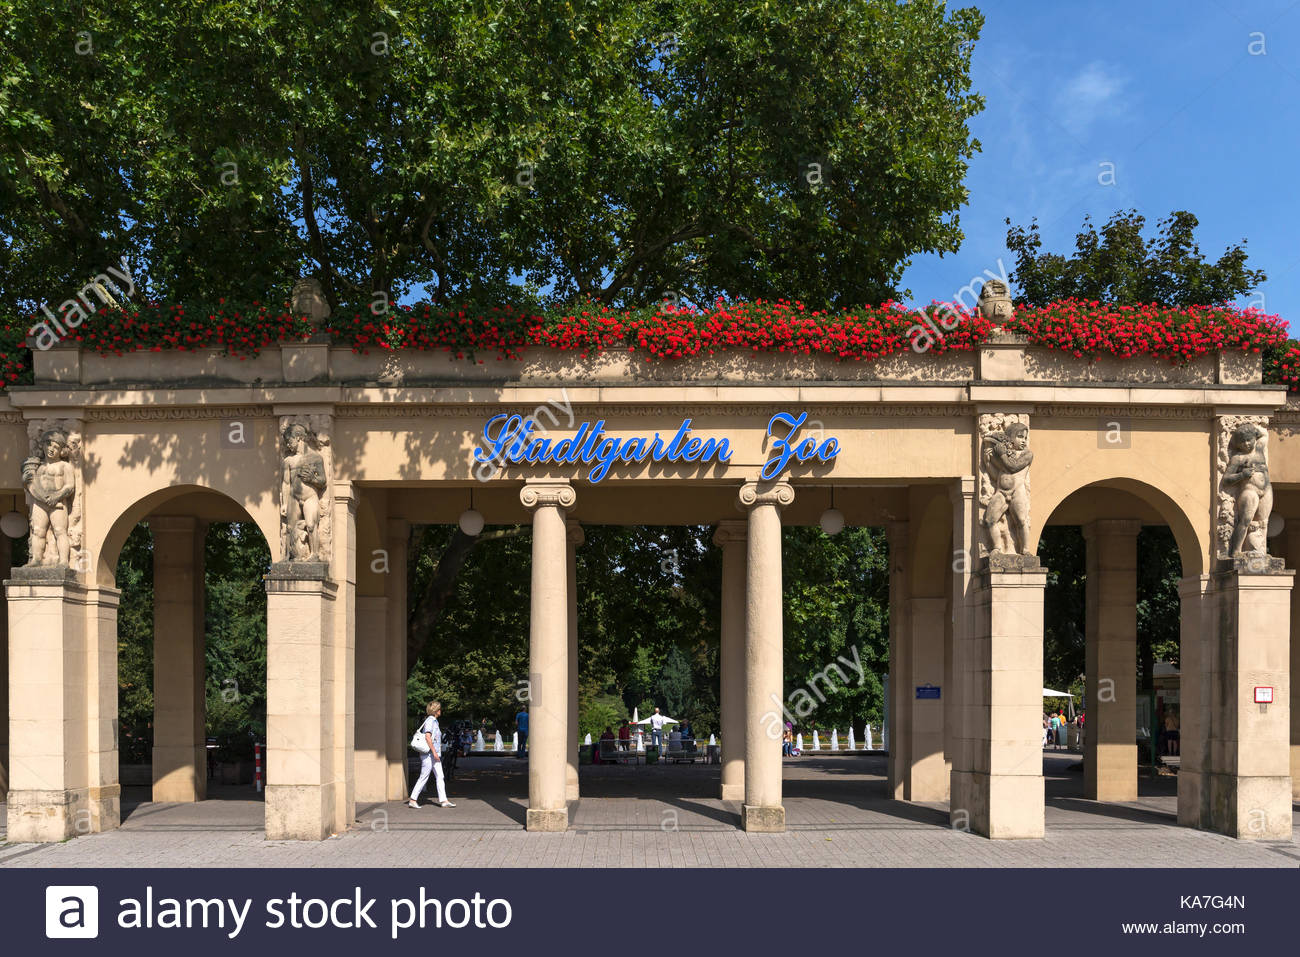 Zoologischer Garten Karlsruhe Neu Zoo Entrance Gate Stock S & Zoo Entrance Gate Stock